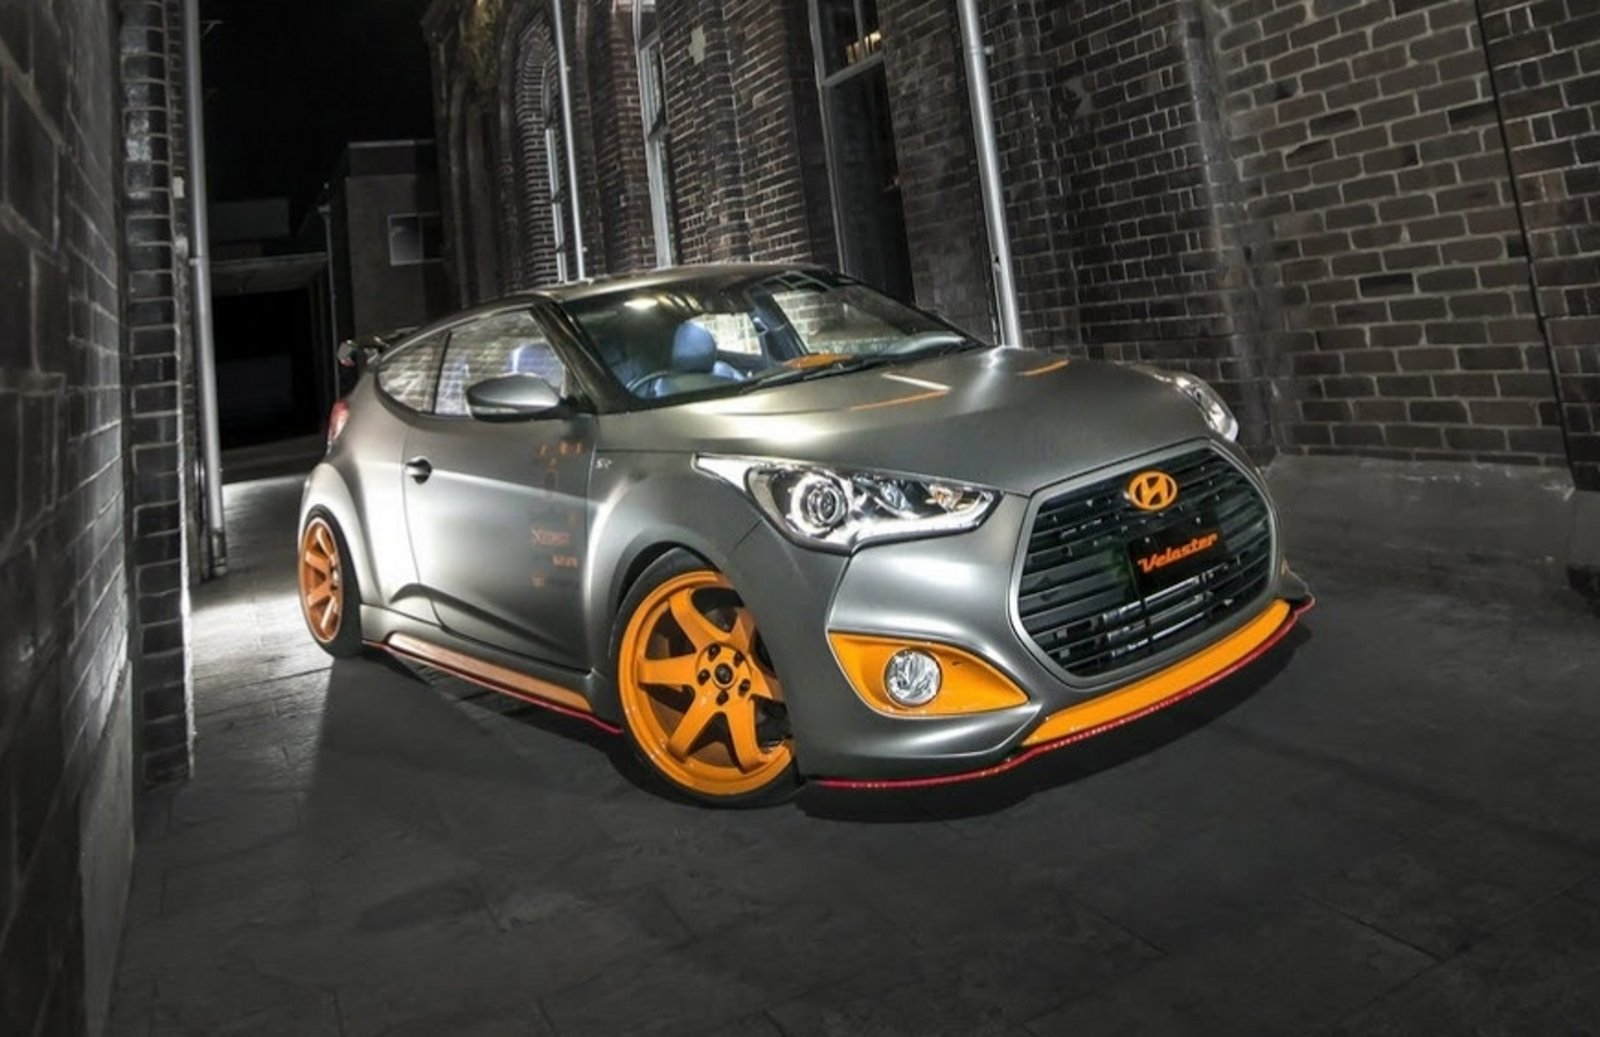 International Auto Show >> 2013 Hyundai Veloster Street Concept Review - Top Speed